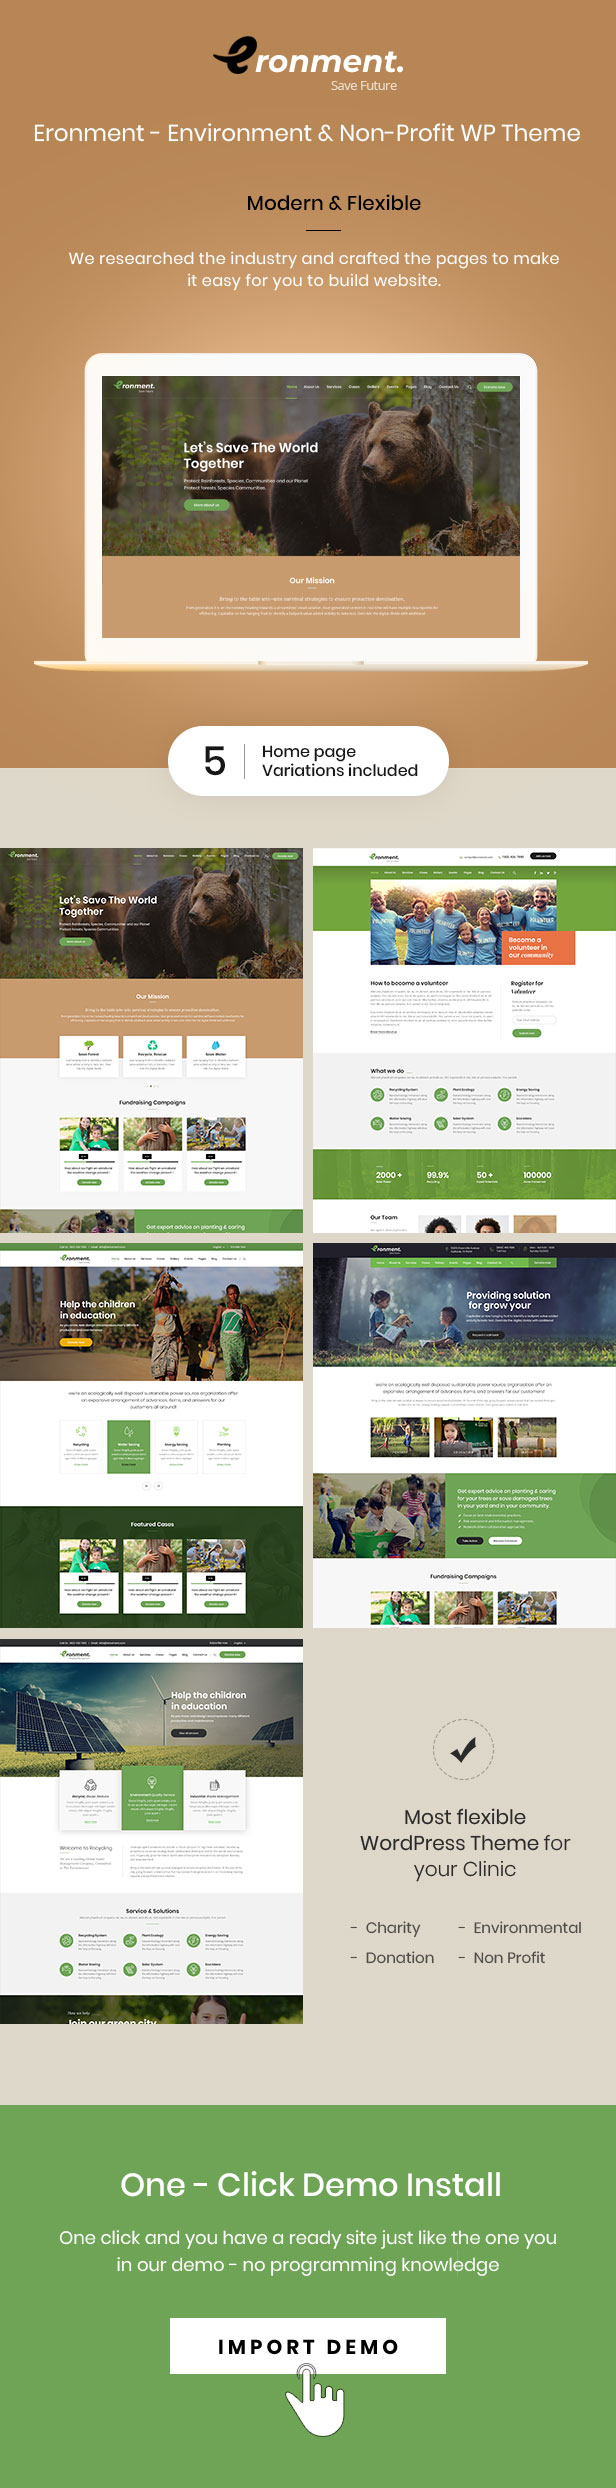 Eronment - Environmental WordPress theme - 1